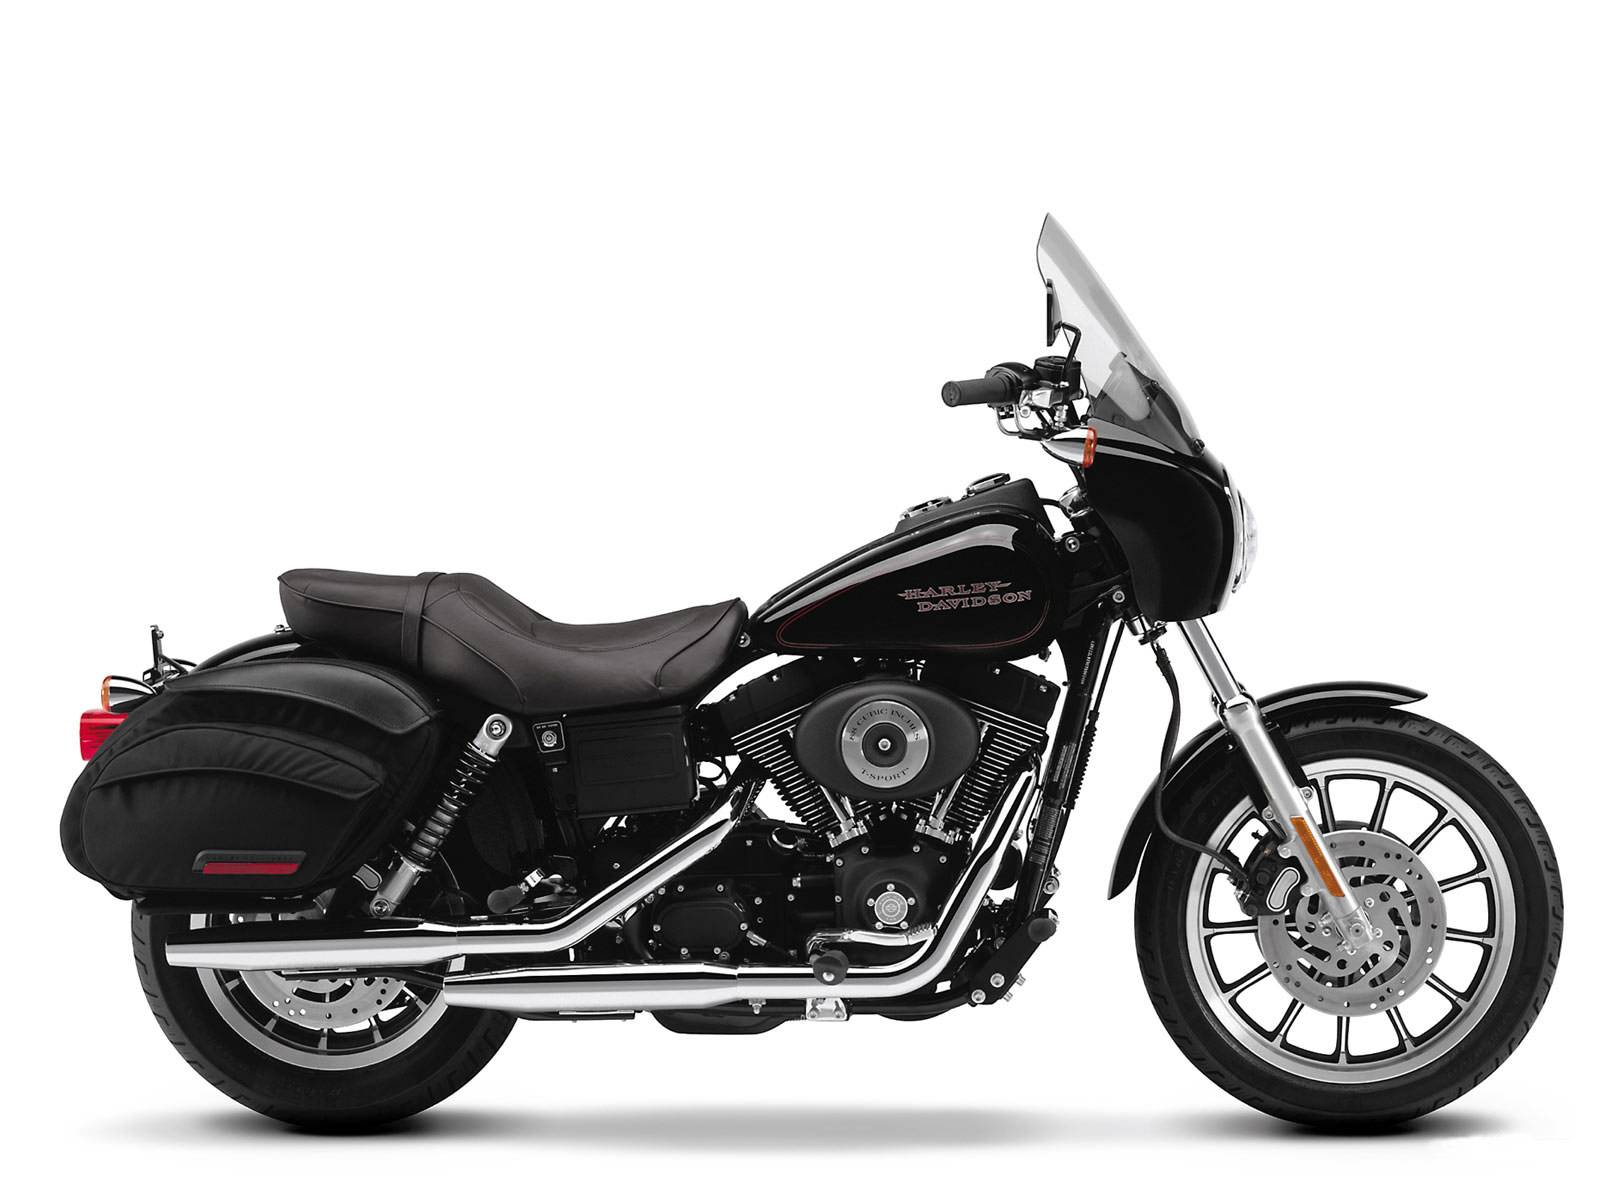 harley davidson fxdxt dyna super glide t sport wallpapers. Black Bedroom Furniture Sets. Home Design Ideas